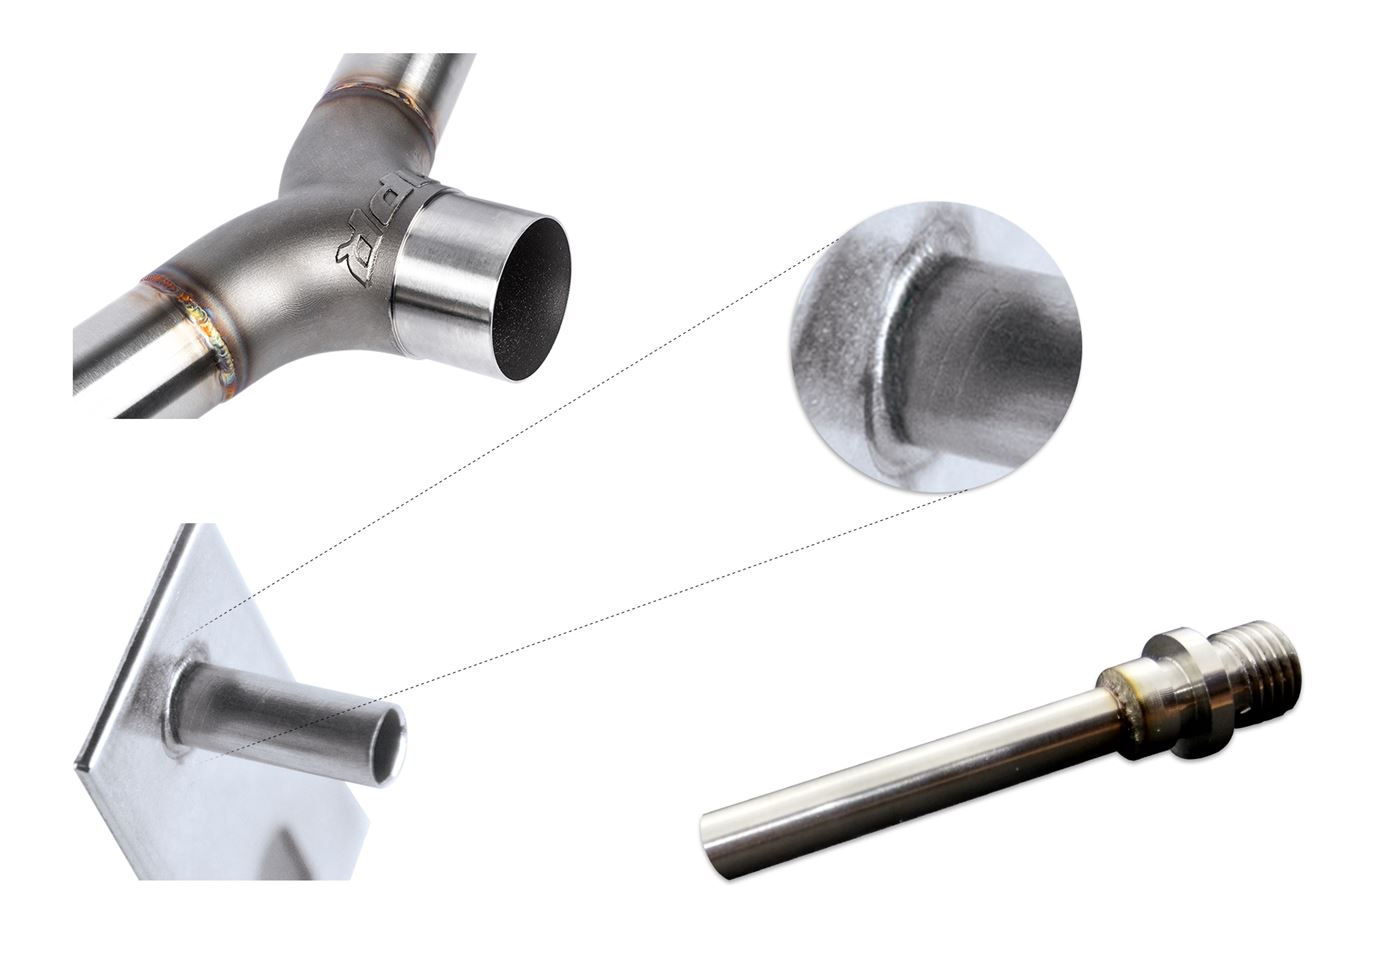 High quality welds for tubes and pipes